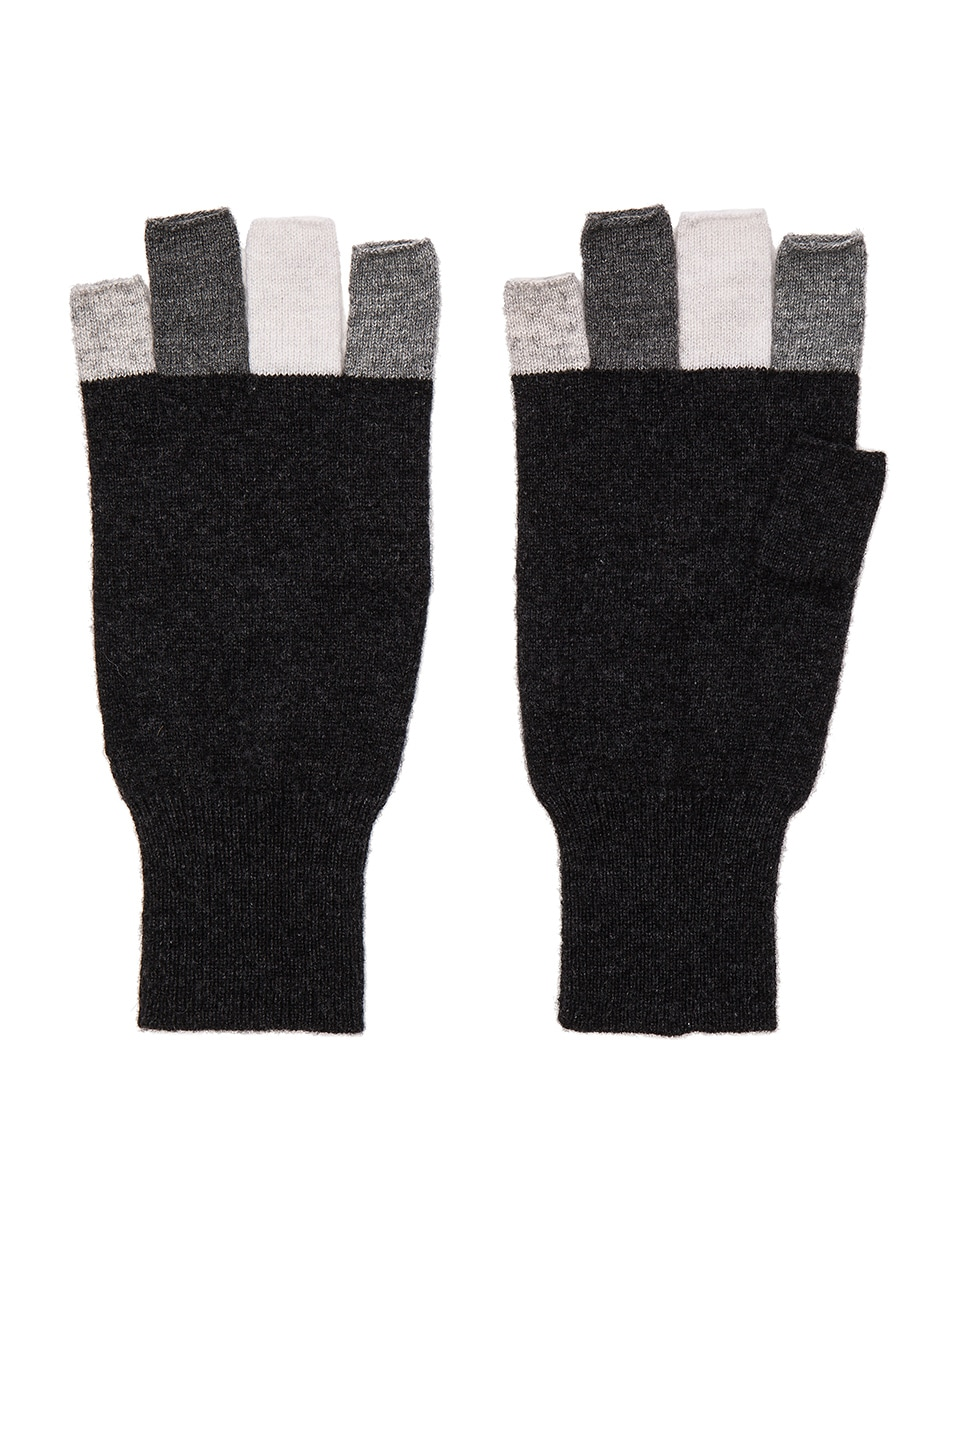 Autumn Cashmere Multi Fingerless Glove in Lead Multi